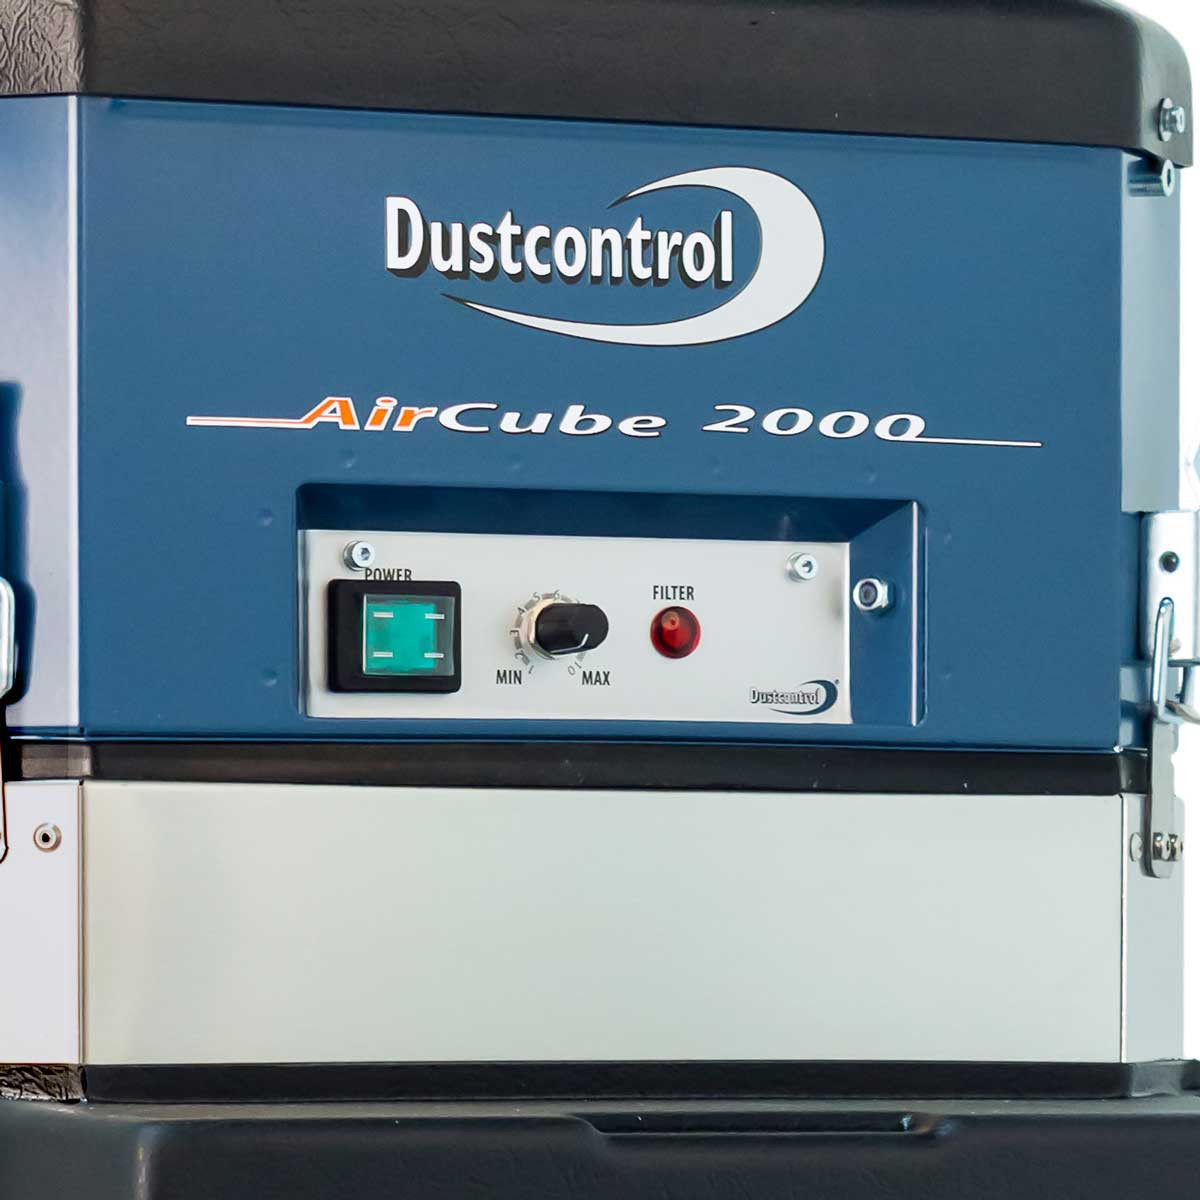 DustControl DC AirCube 2000 grill